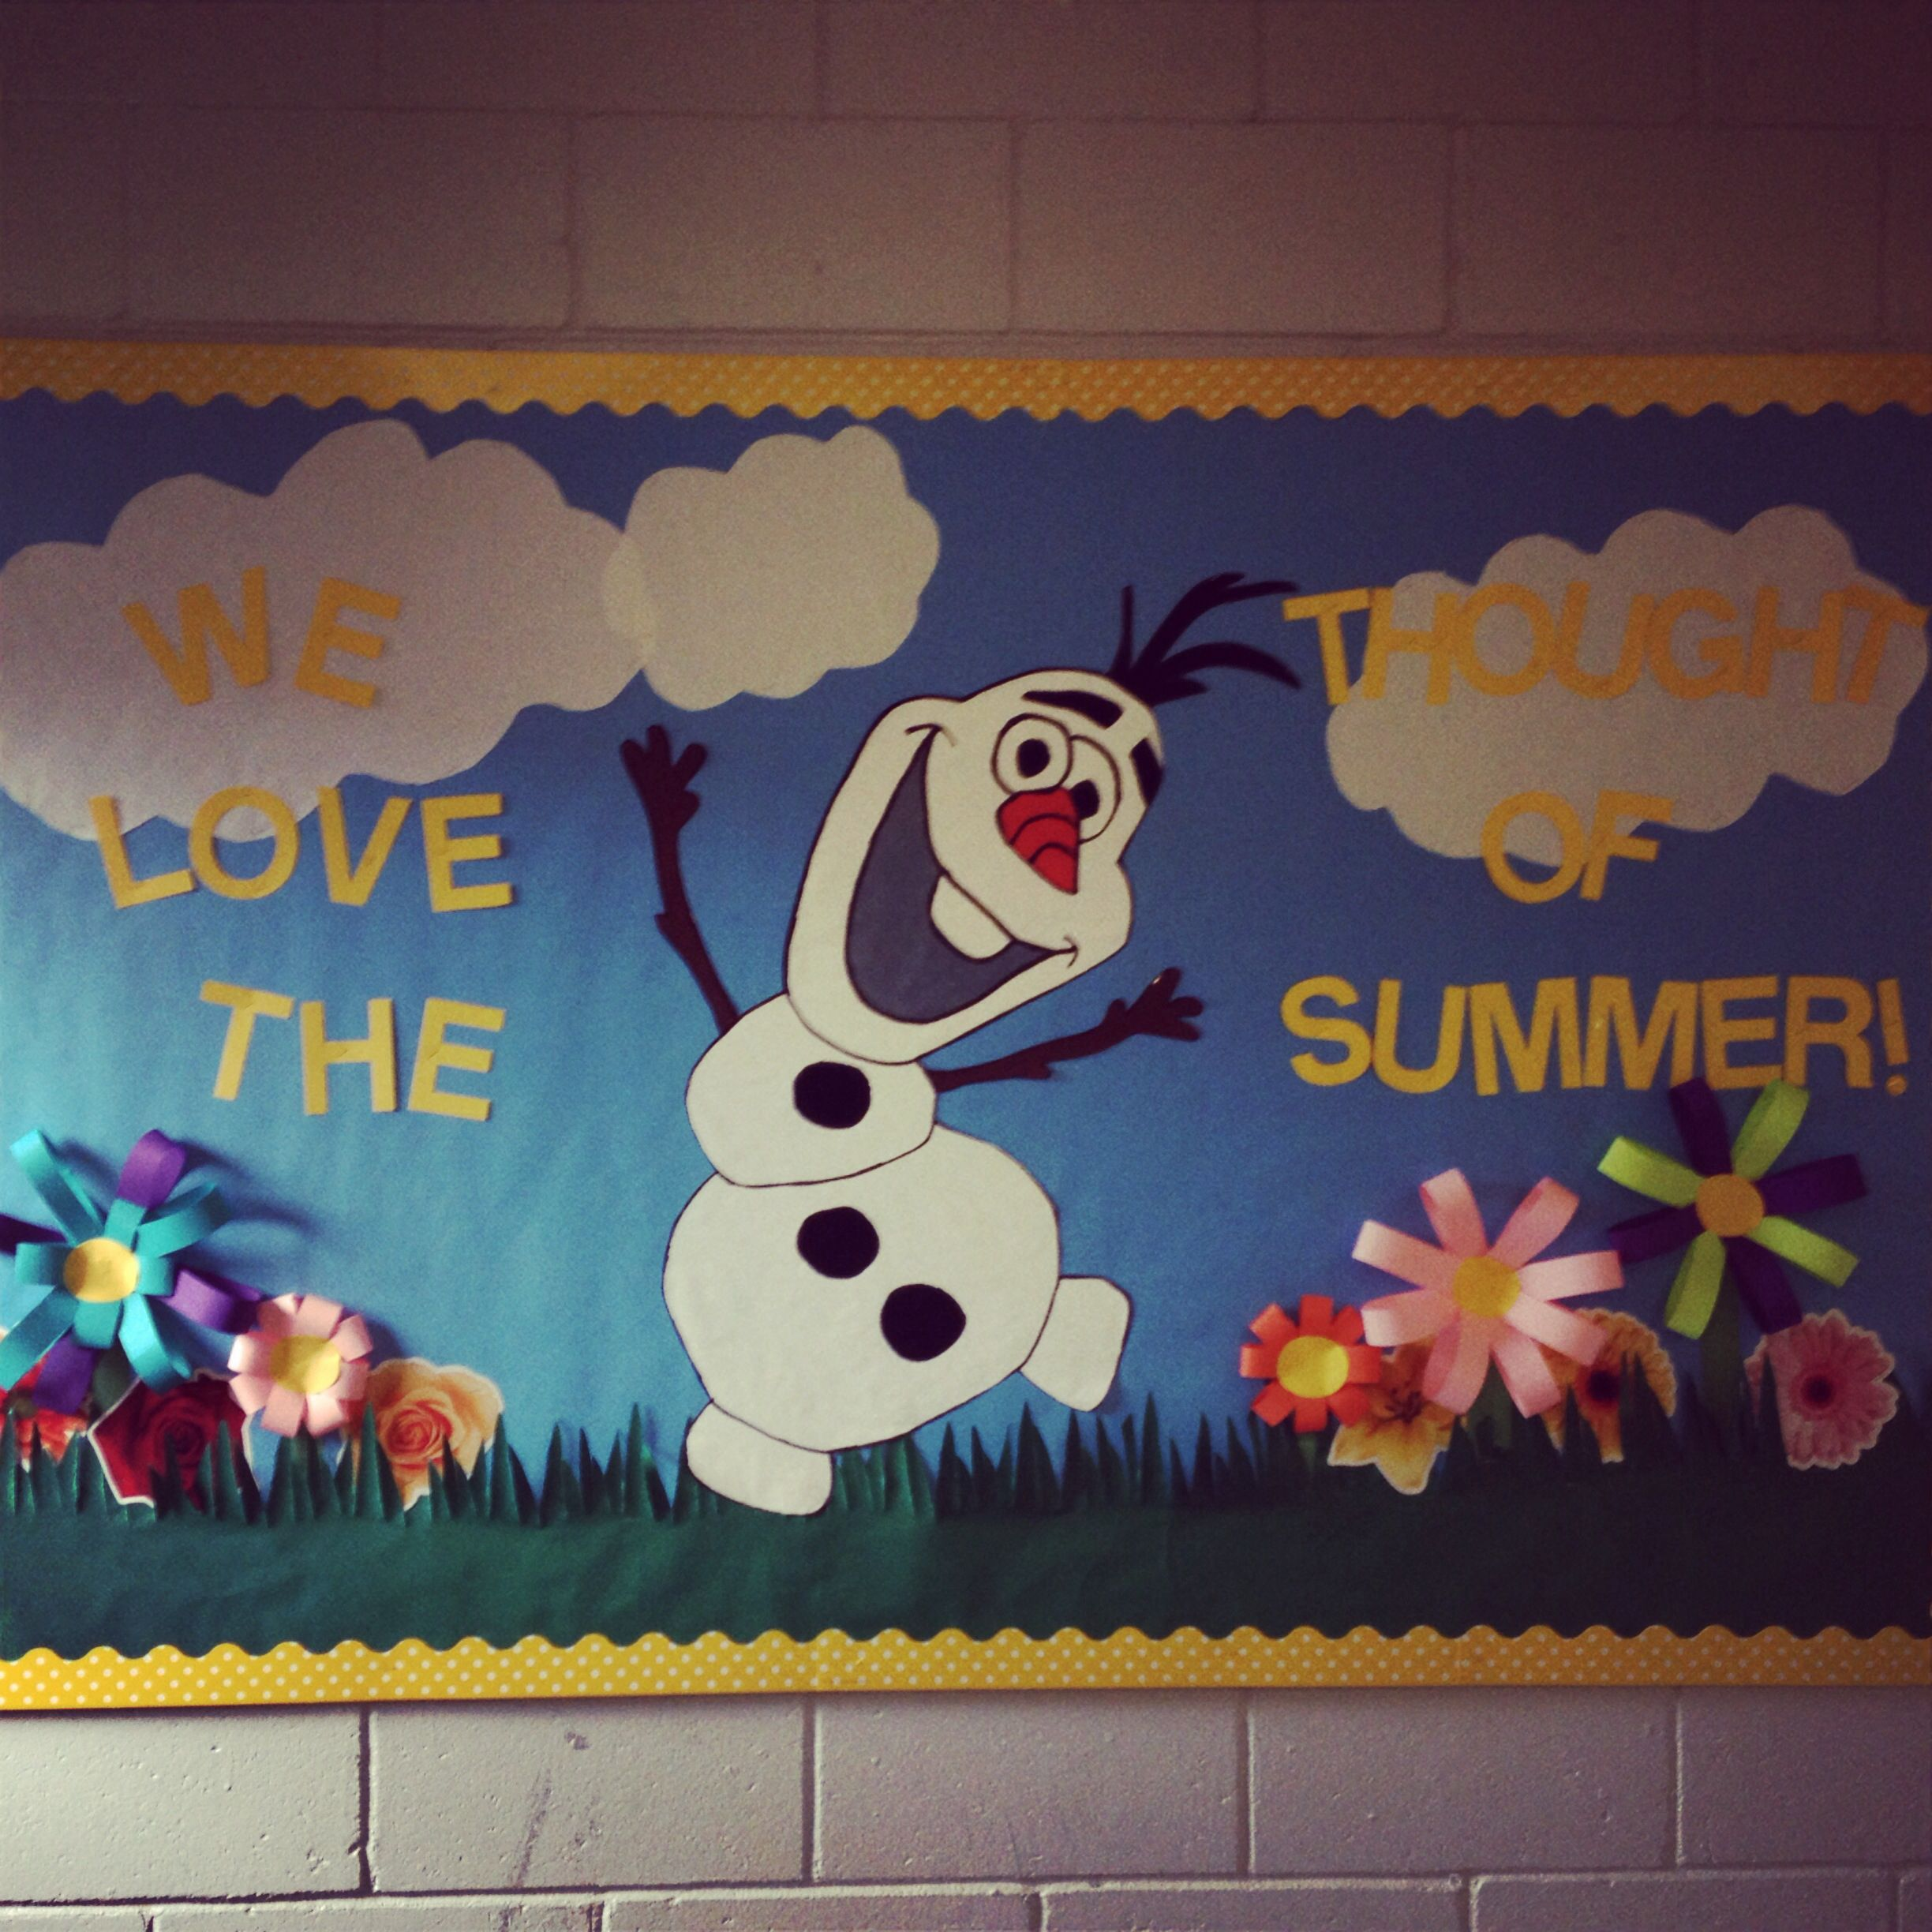 Go green vegetable bulletin board idea myclassroomideas com - Summer Bulletin Board With Olaf